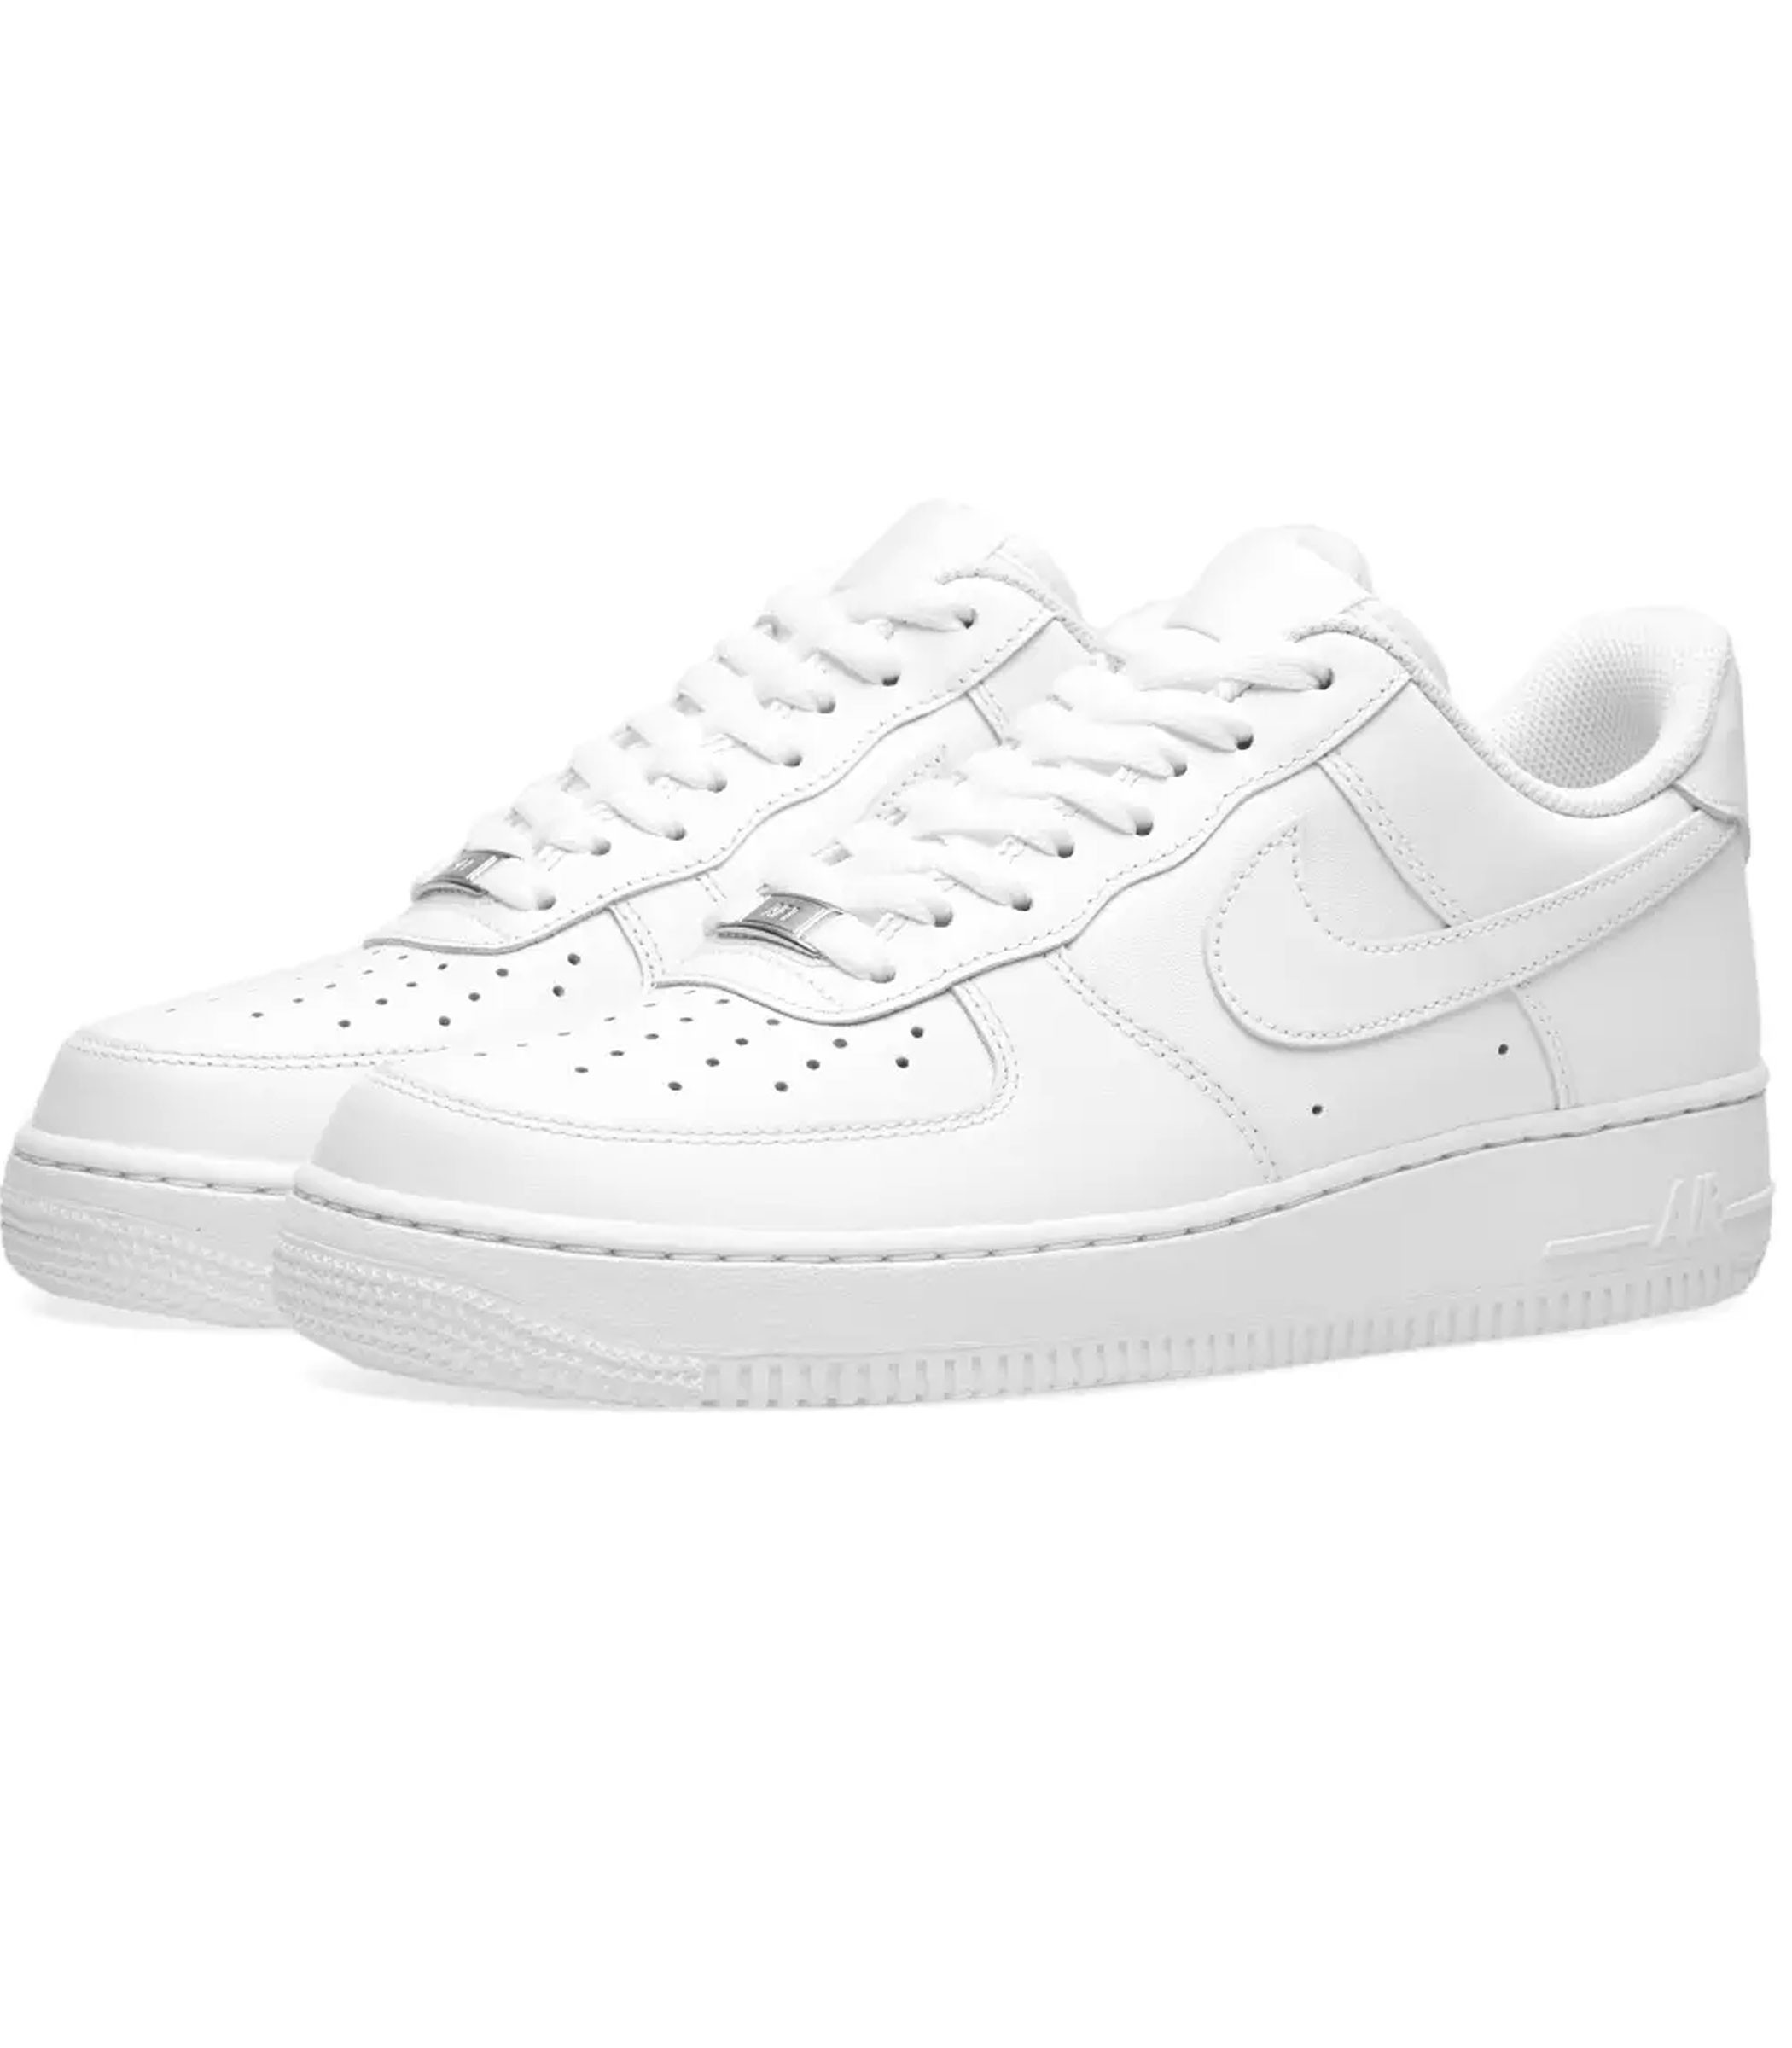 huge selection of ba264 7b421 Scarpe Nike Air Force 1  07 - Uomo 315122-111 ...